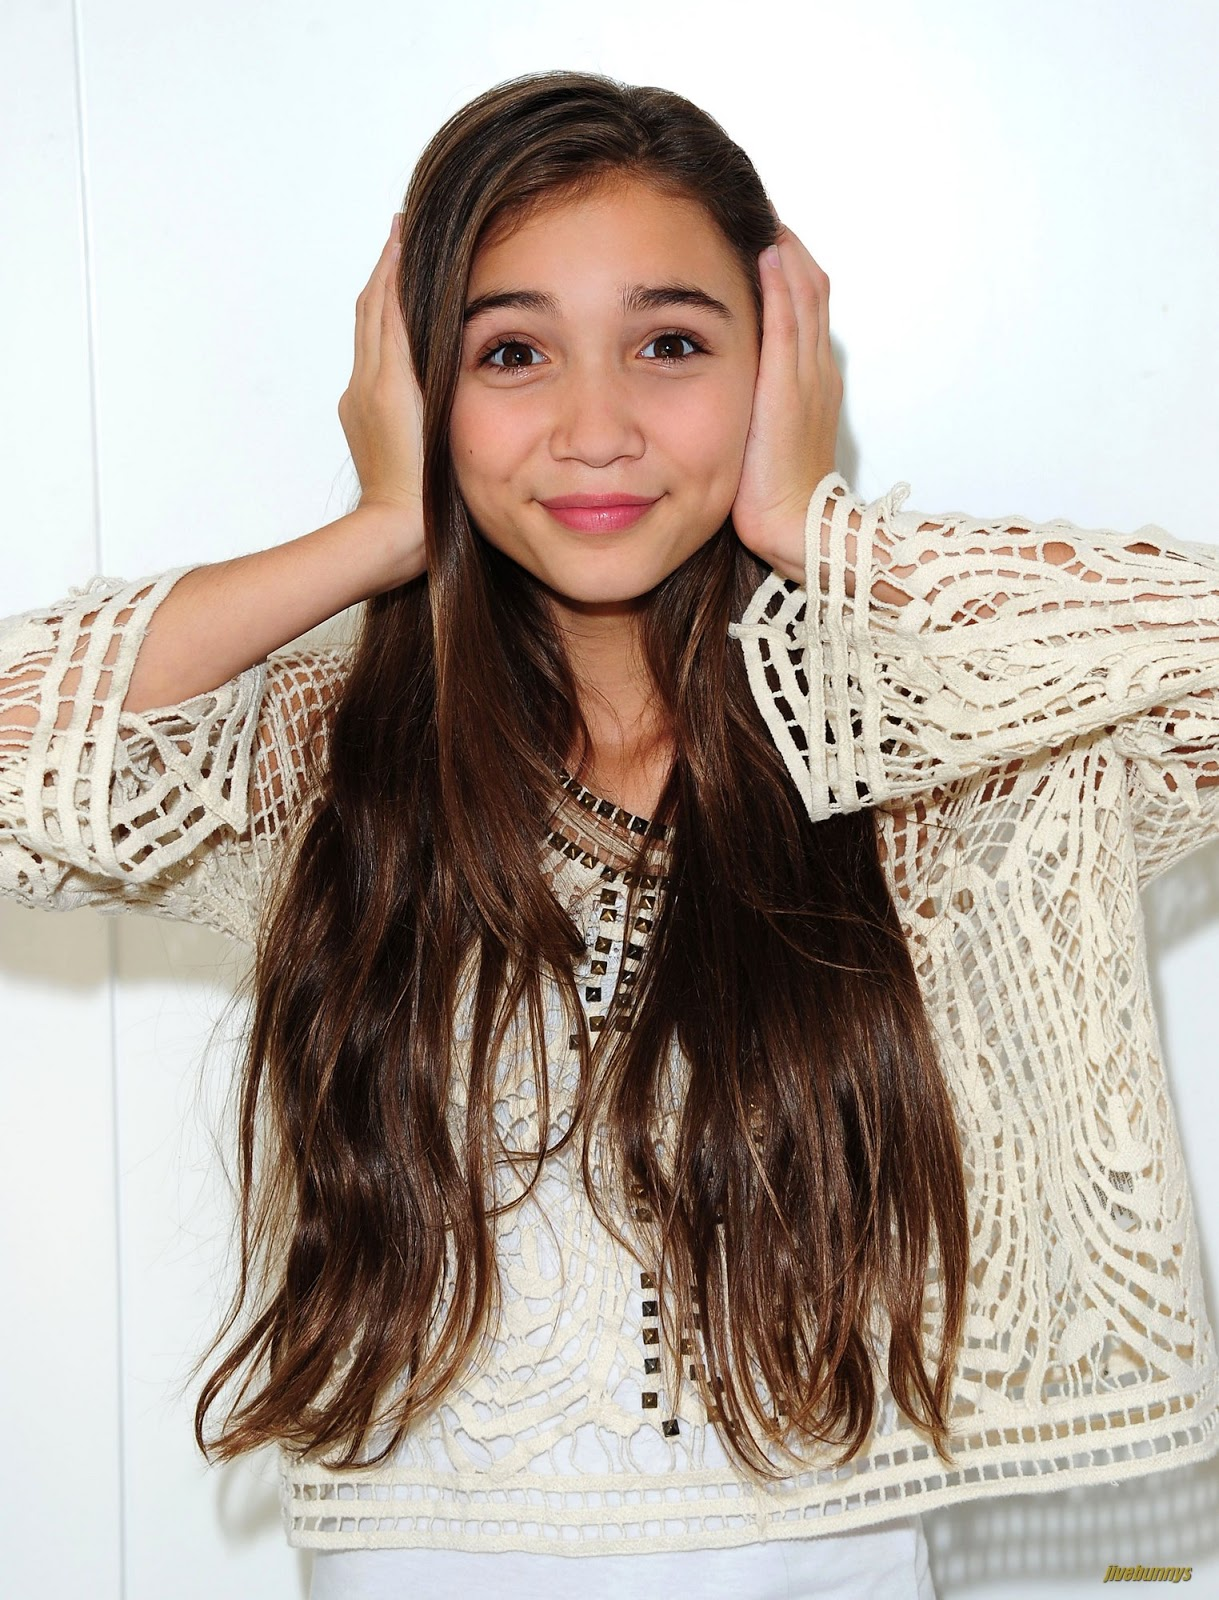 girl meets world actress Sat, 05 may 2018 06:19:00 gmt girl meets world cast pdf - girl meets world (tv series 2014–2017) cast and crew credits, including actors, actresses, directors, writers and.